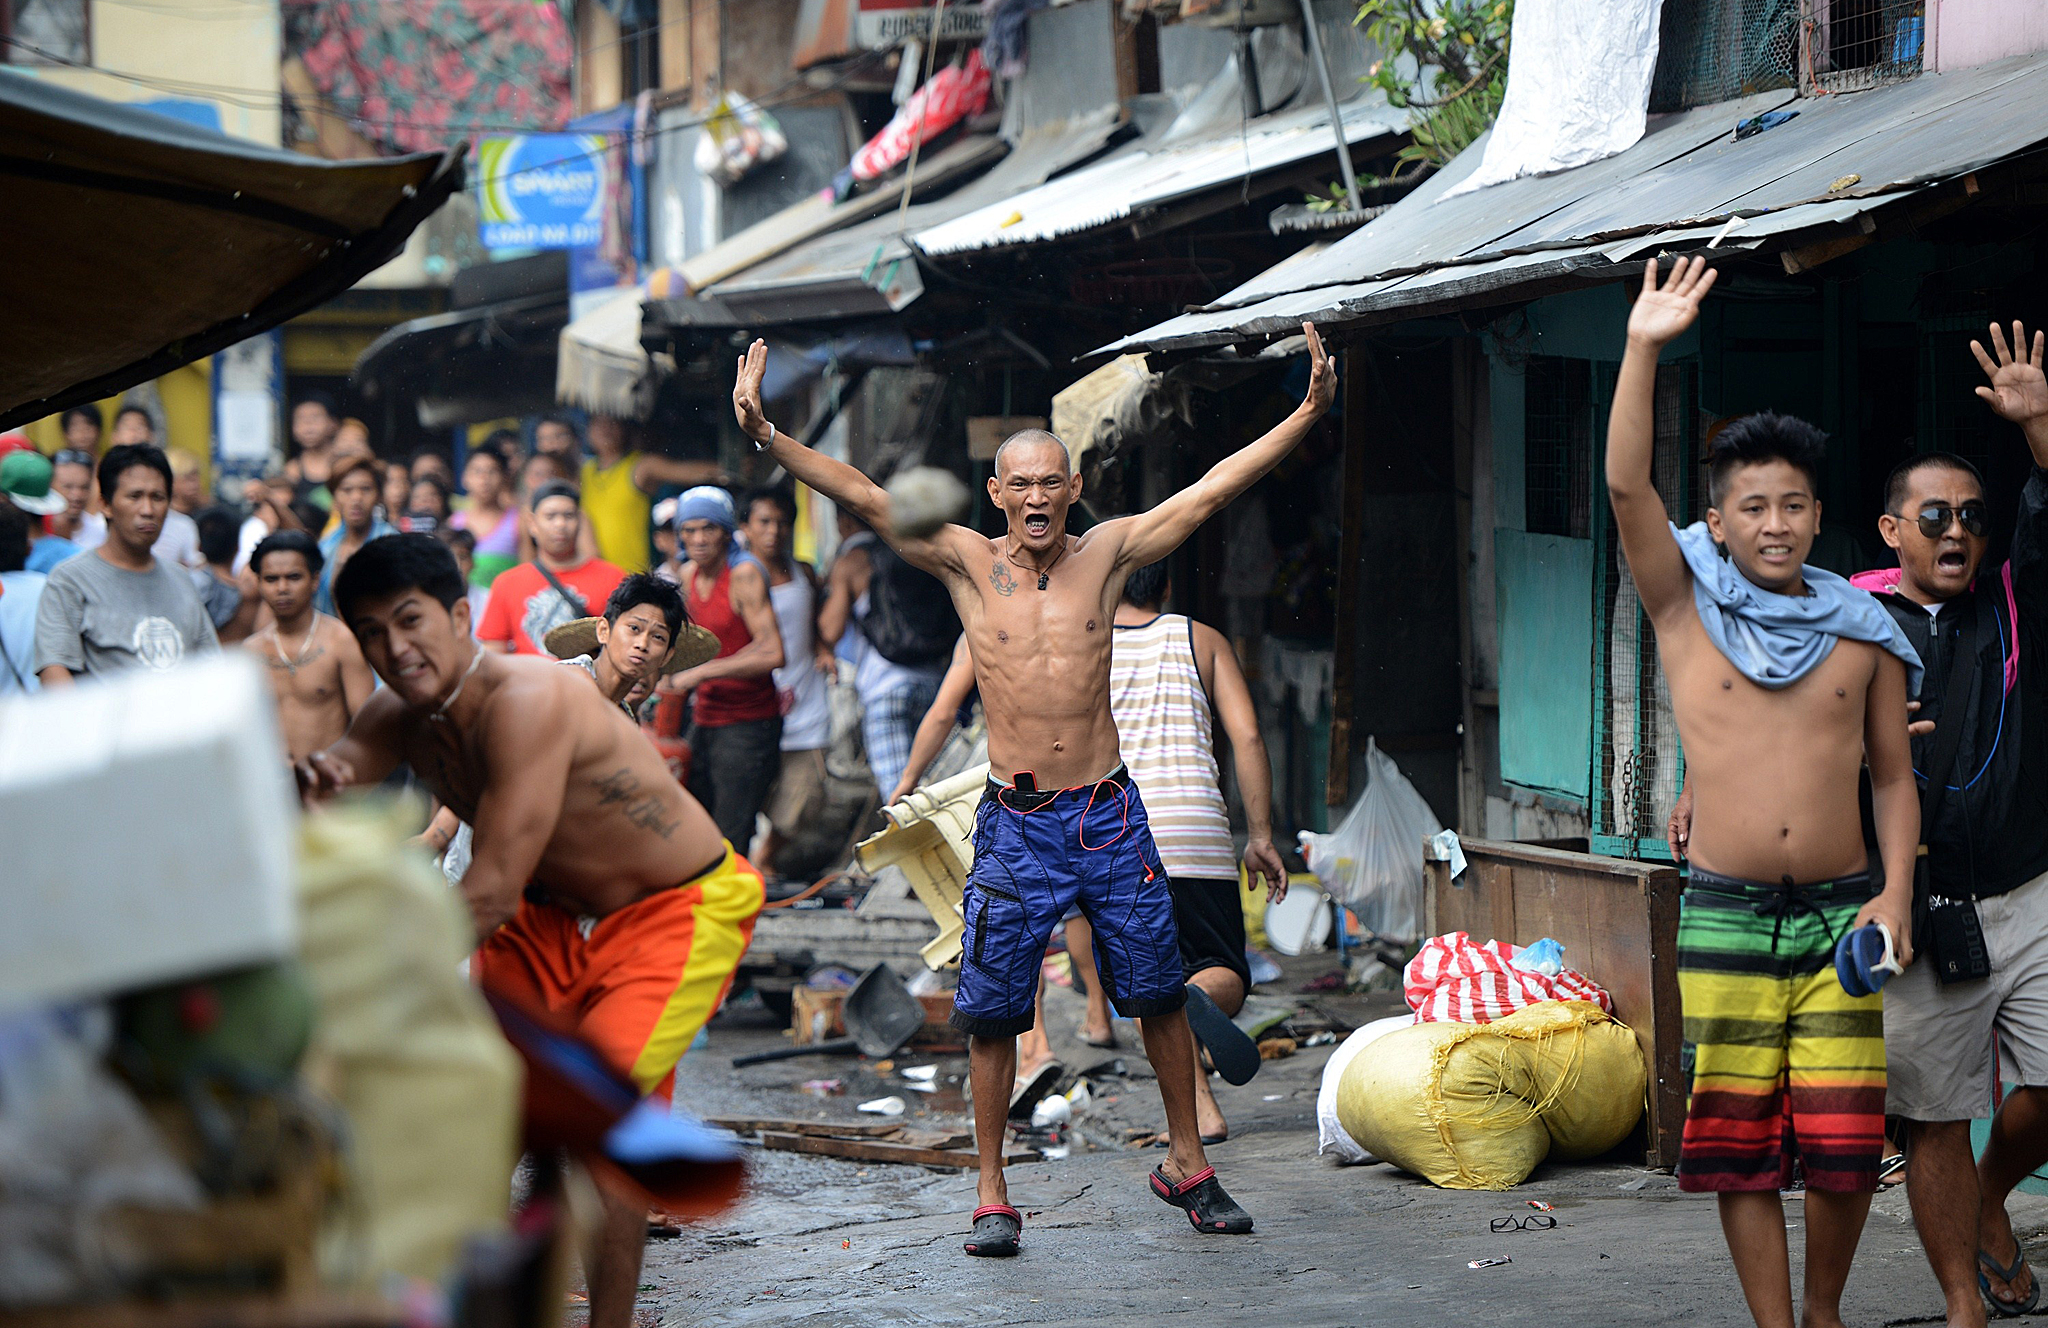 TOPSHOTS A resident (front L) throws an ...TOPSHOTS A resident (front L) throws an empty bottle (C) towards advancing policemen and a demolition team during the demolition of an informal settlers community in Manila on May 26, 2015, to redevelop the area into a business district in a joint venture with a private firm. Some 500 families were affected by the demolition. AFP PHOTO / NOEL CELISNOEL CELIS/AFP/Getty Images